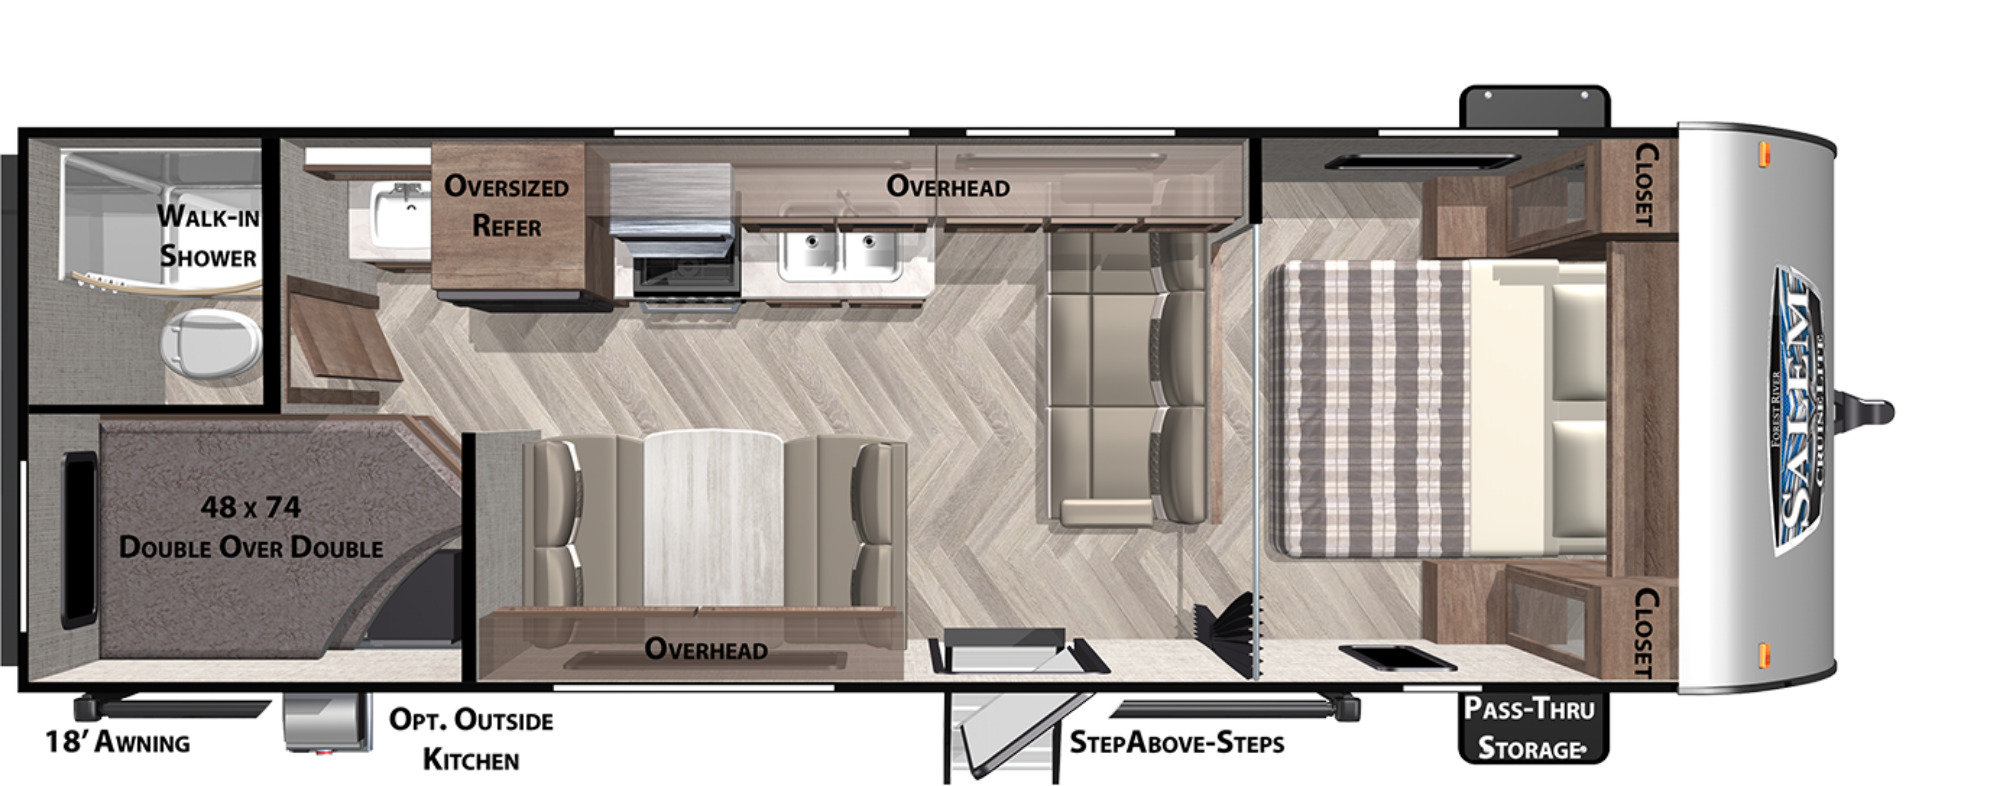 View Floor Plan for 2021 FOREST RIVER SALEM CRUISE LITE 261BHXL